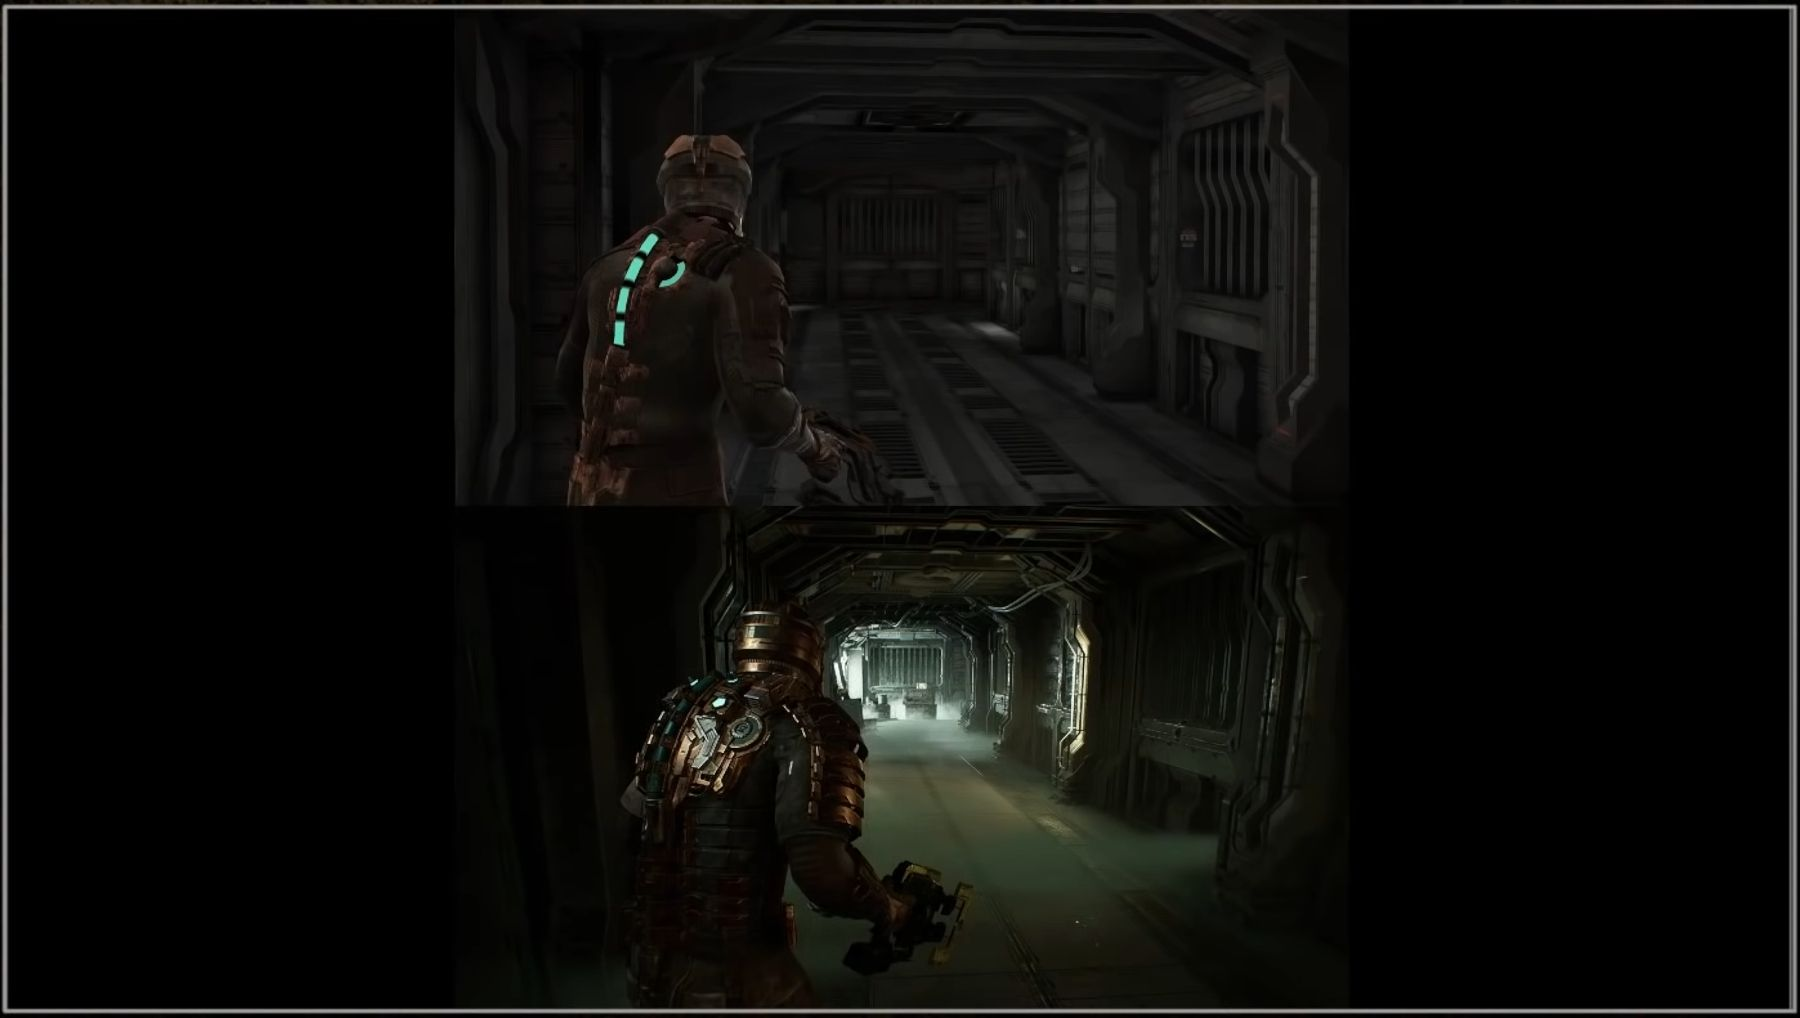 Image Shows How Much Dead Space Graphics Are Improving from Original to Remake